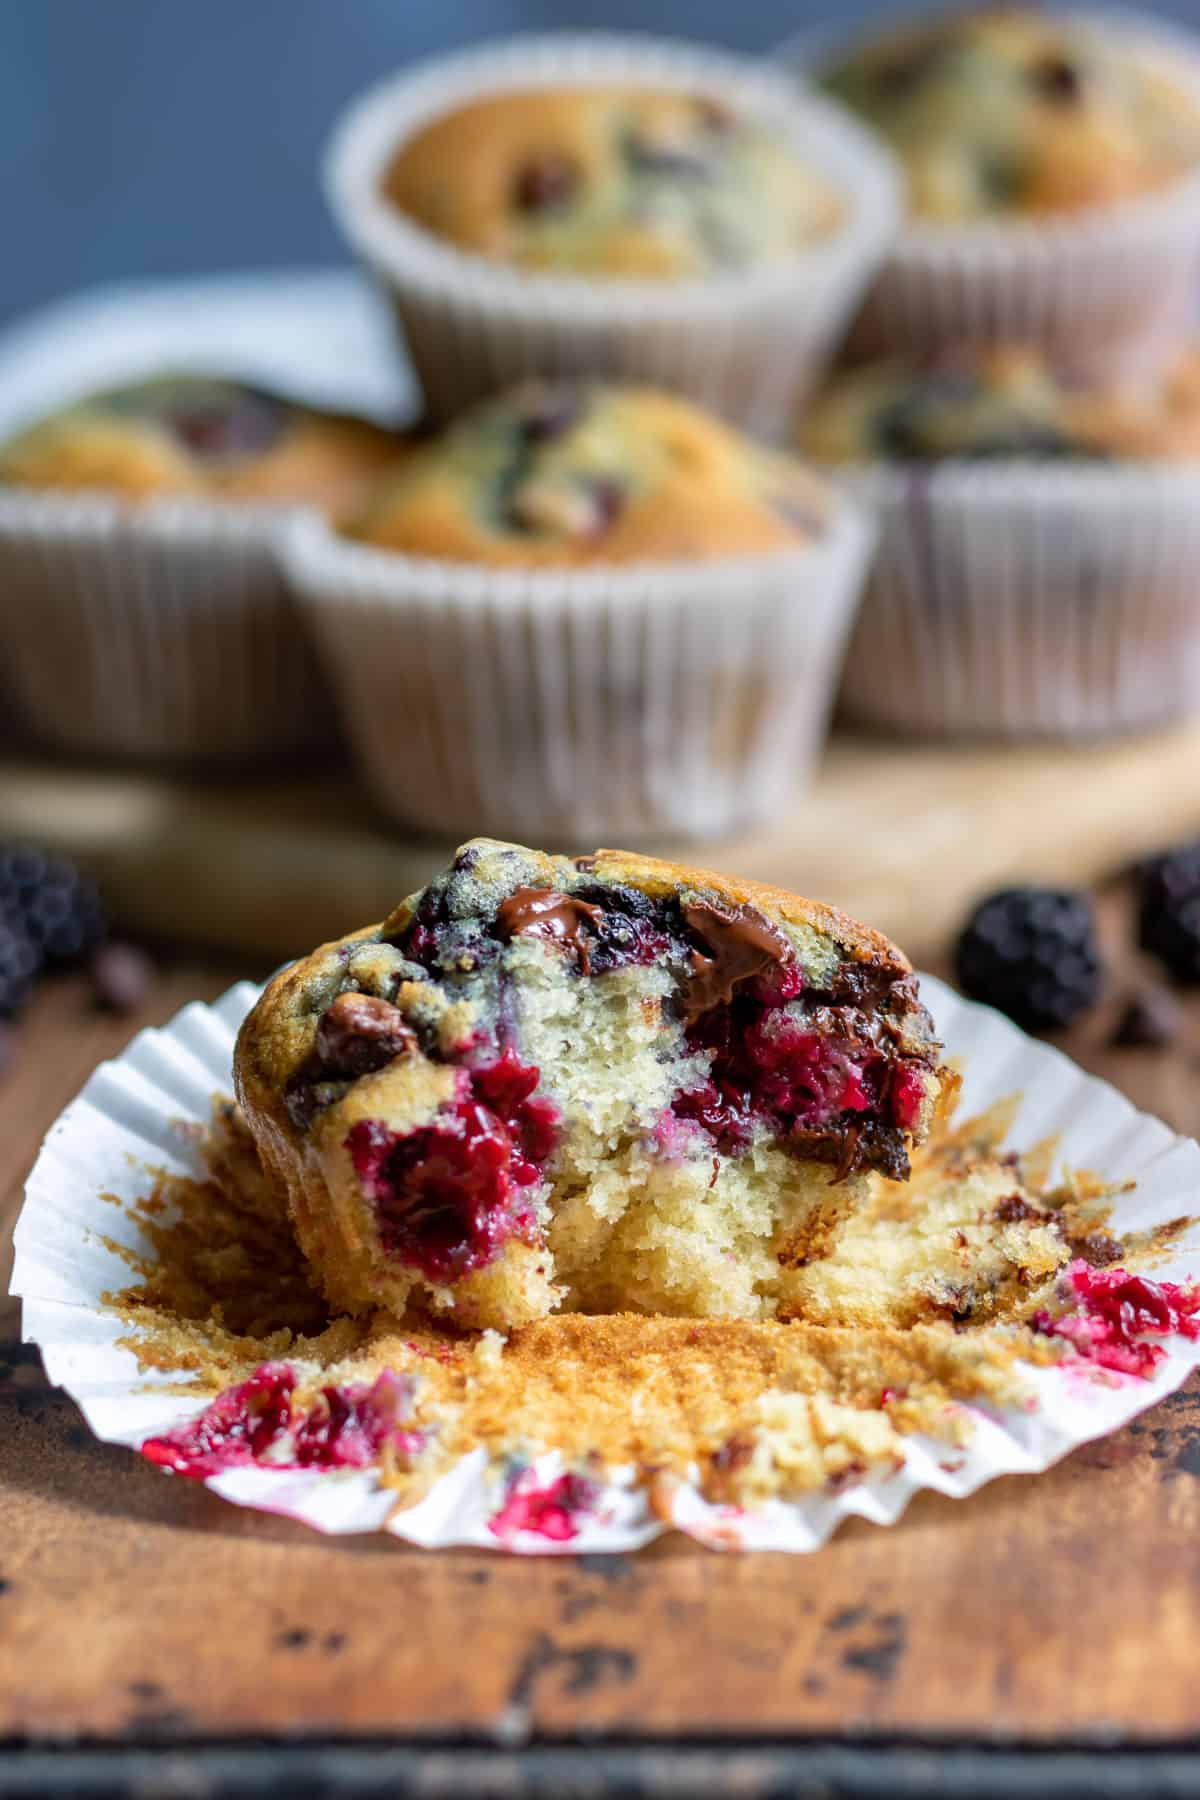 Close up of a muffin with a bite out.